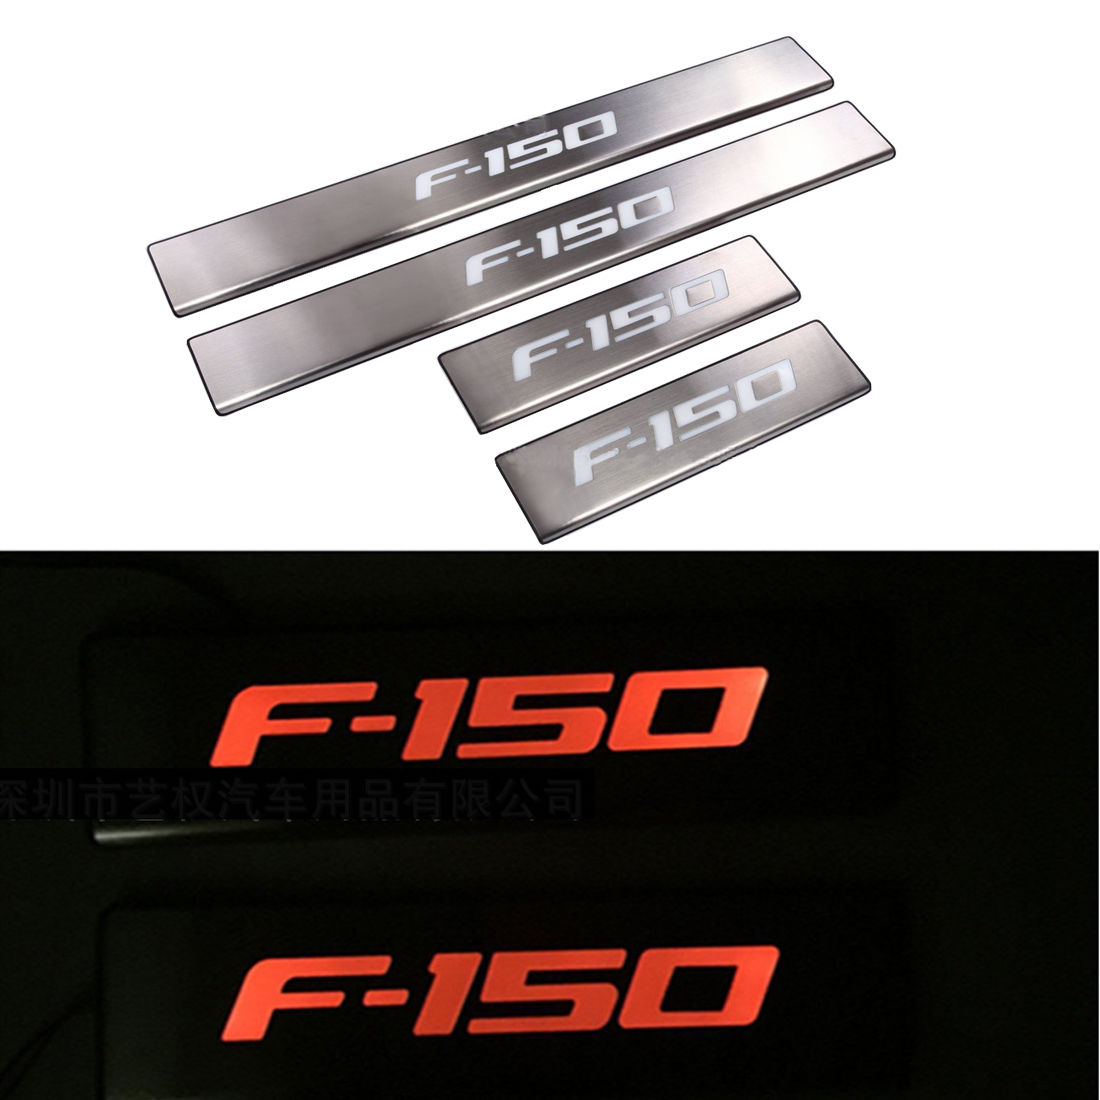 US ライトガード プロテクター フォードF150用4xLED軽量ステンレススカーフプレートドアシルエントリーガード2009-2015 4xLED Light Stainless Scuff Plate Door Sill Entry Guard For Ford F150 2009-2015